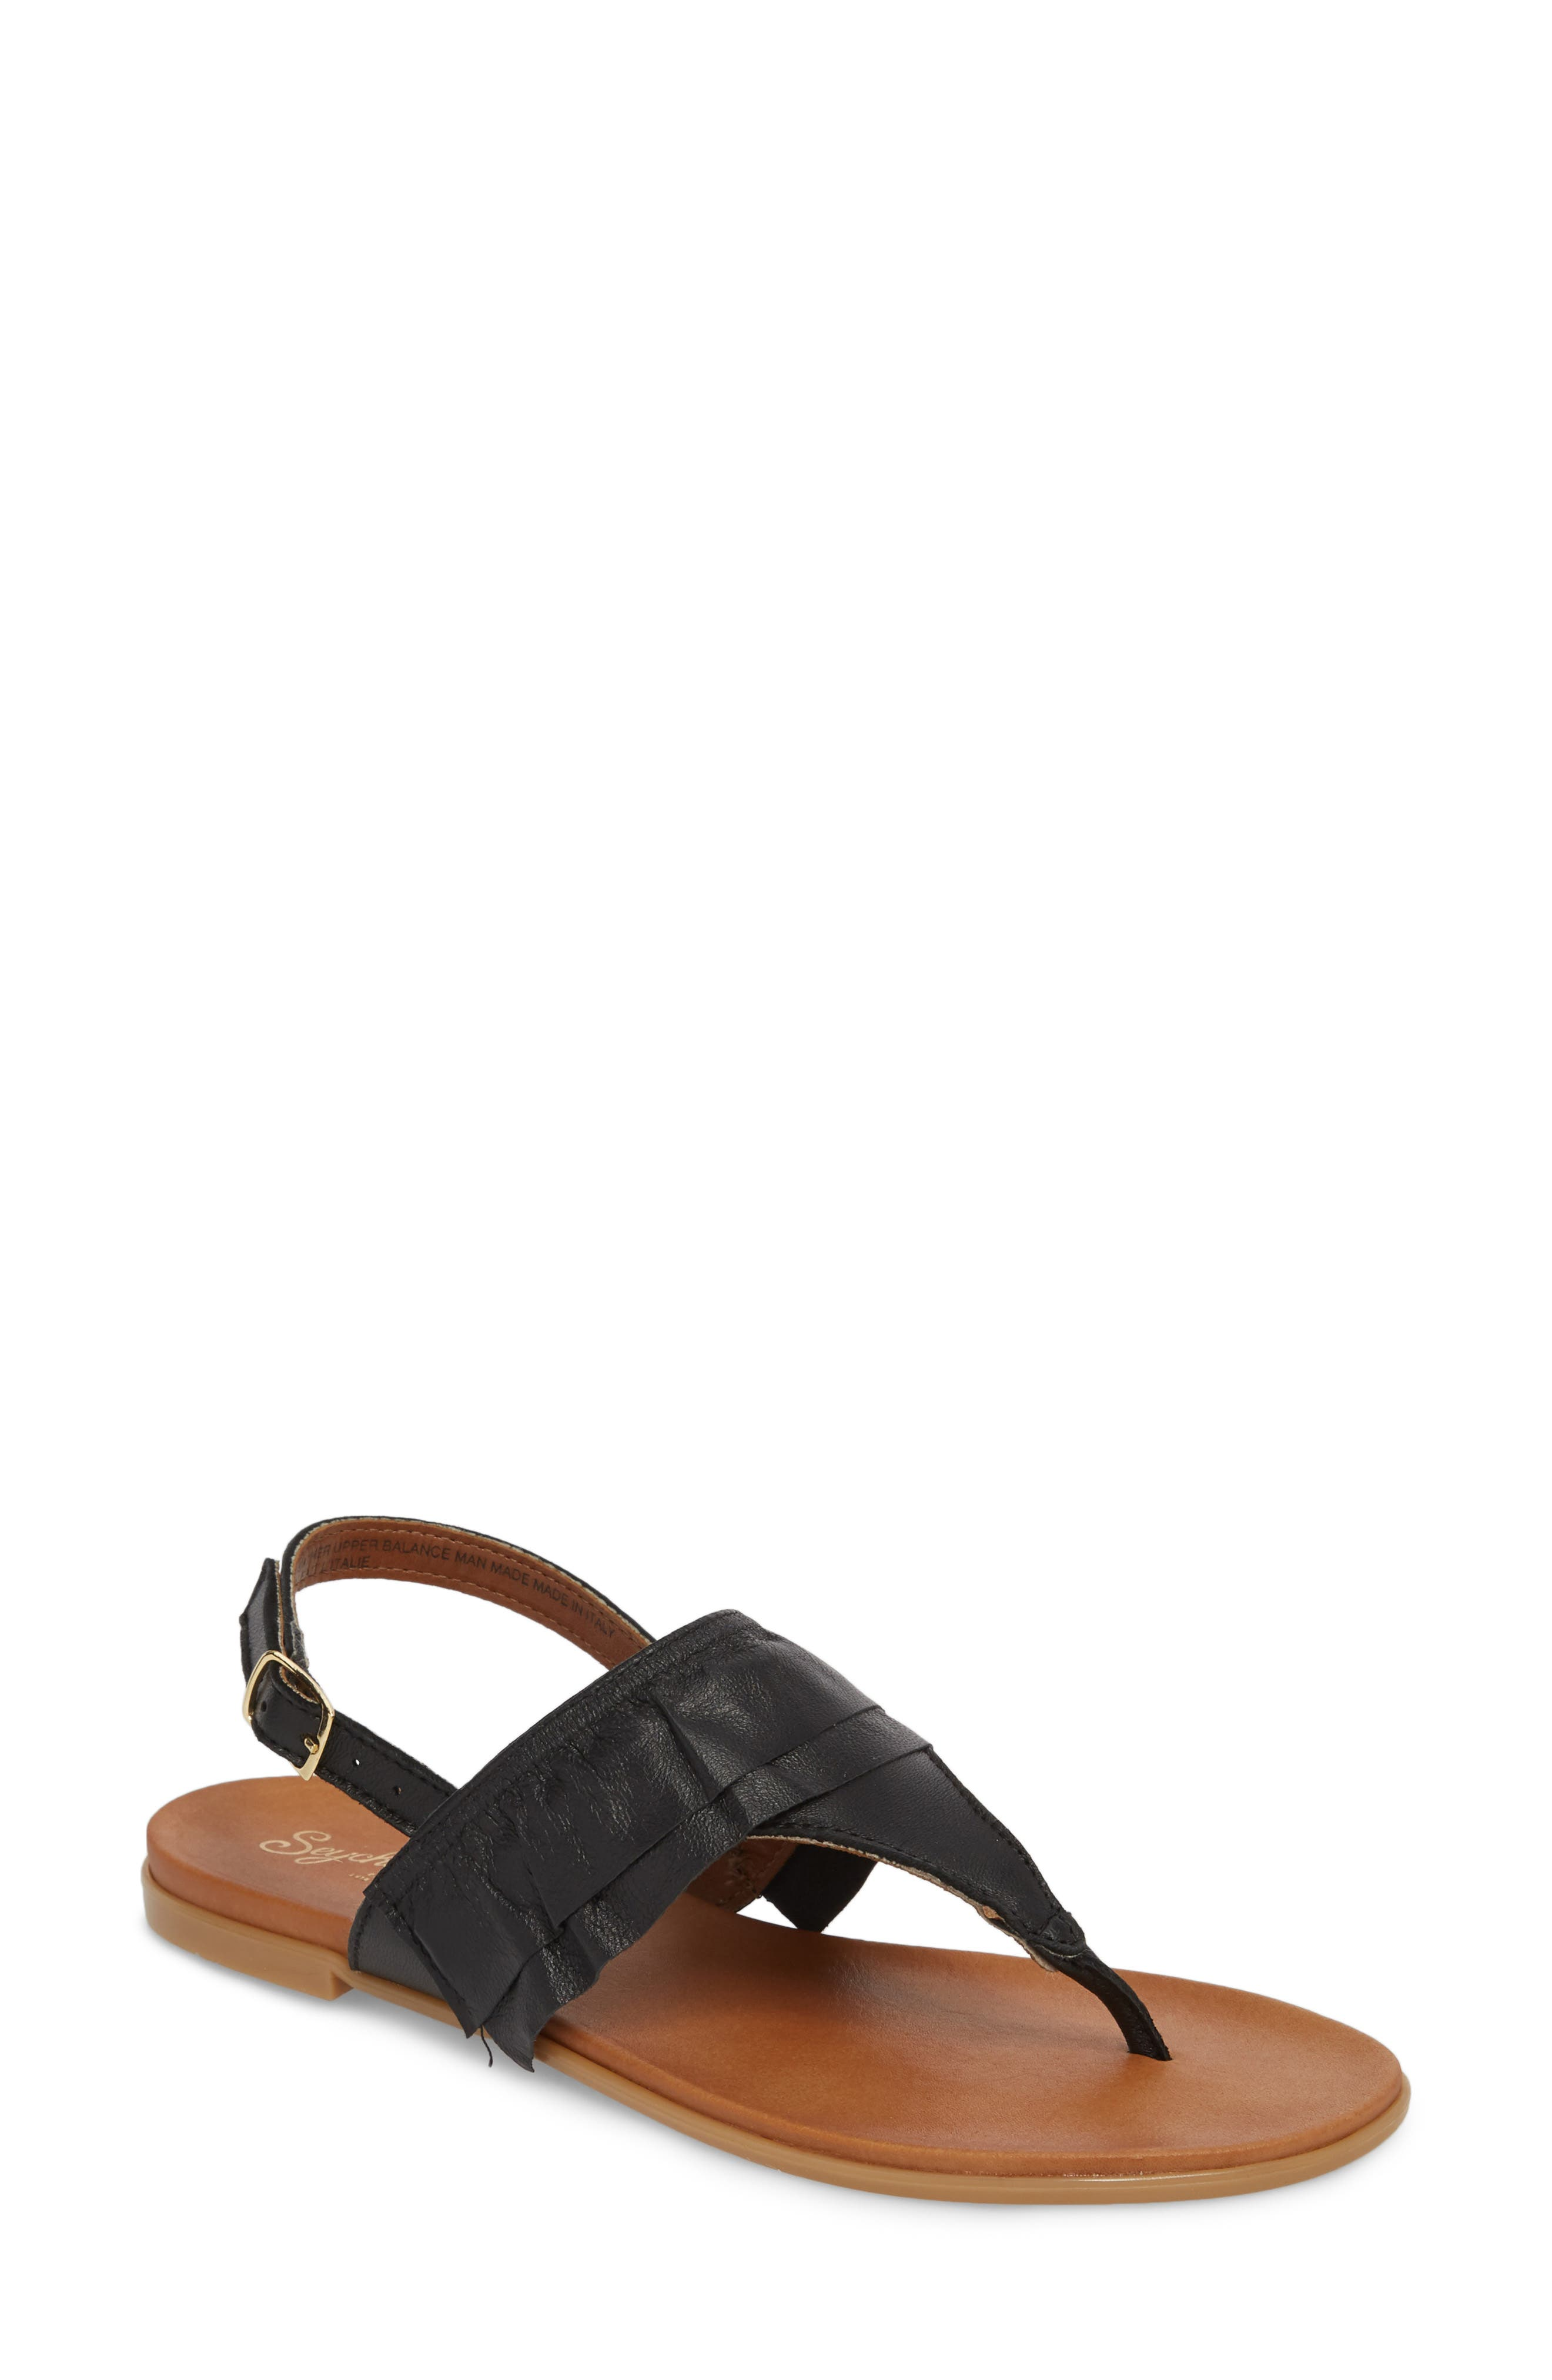 Seclusion Ruffle Sandal,                             Main thumbnail 1, color,                             BLACK LEATHER